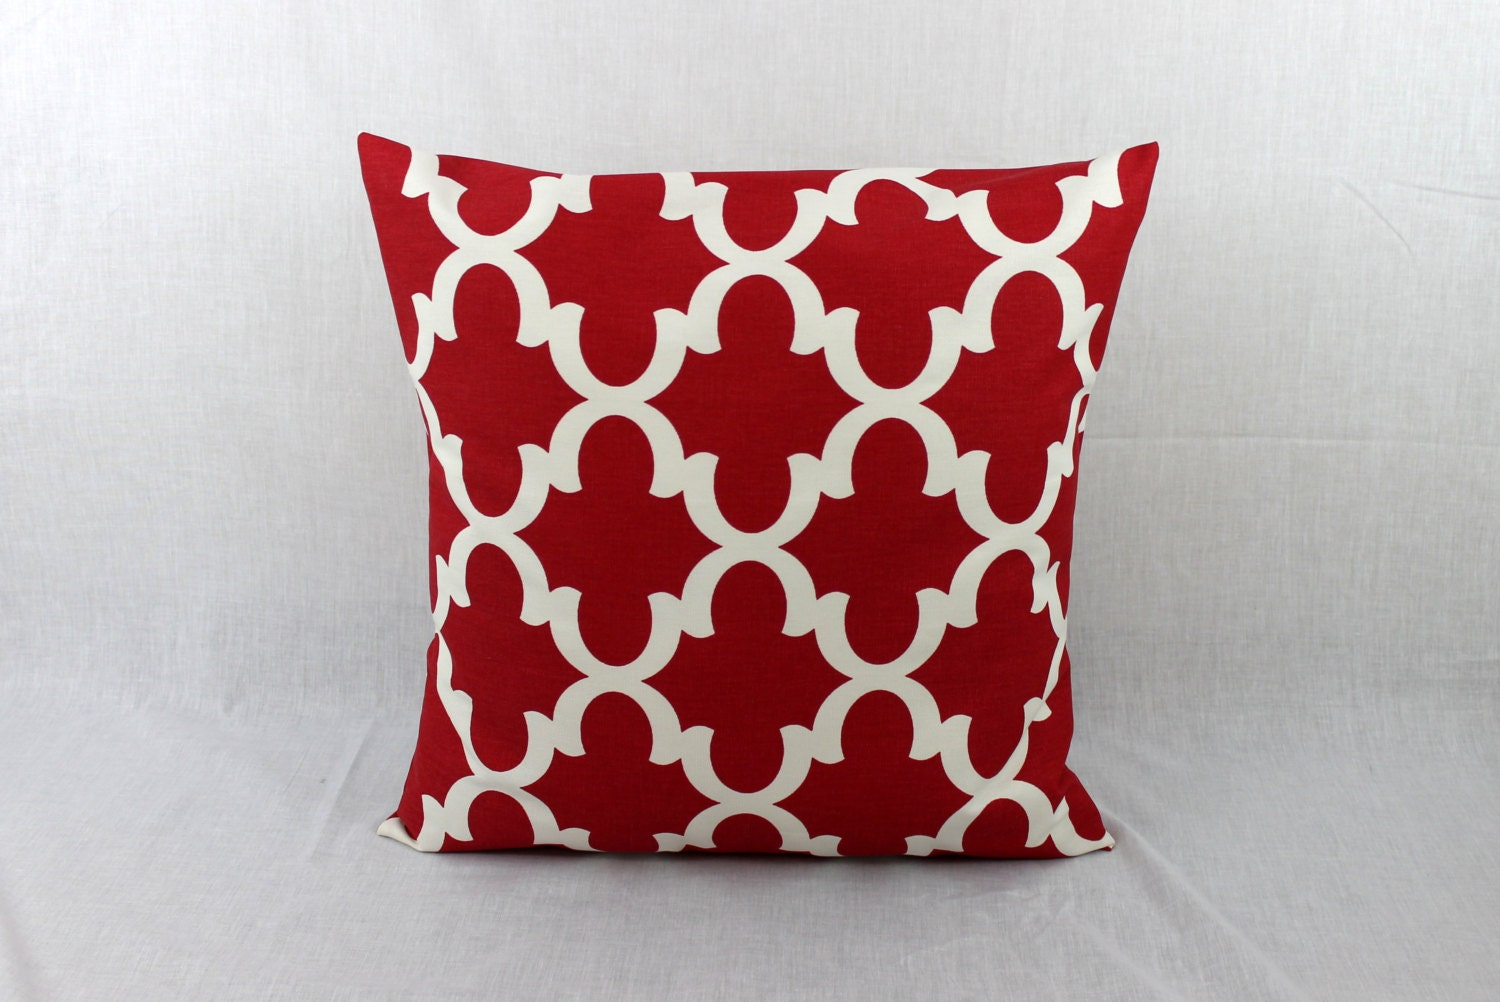 Decorative Pillows For Red Sofa : Red Pillow Couch Pillow Cover Gray Throw Pillow by HomeMakeOver